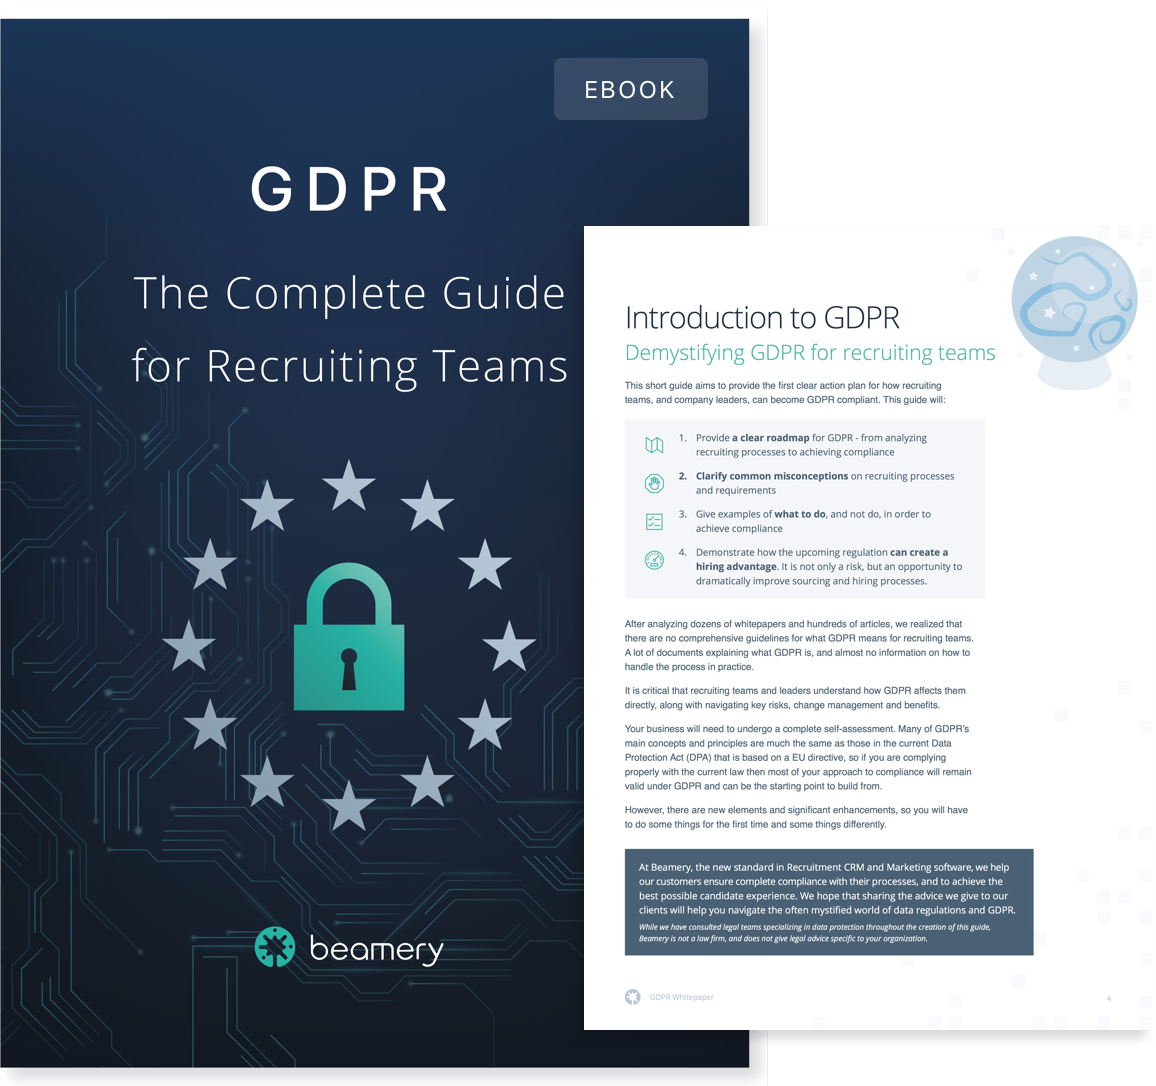 GDPR: The Complete Guide for Recruiting Teams image